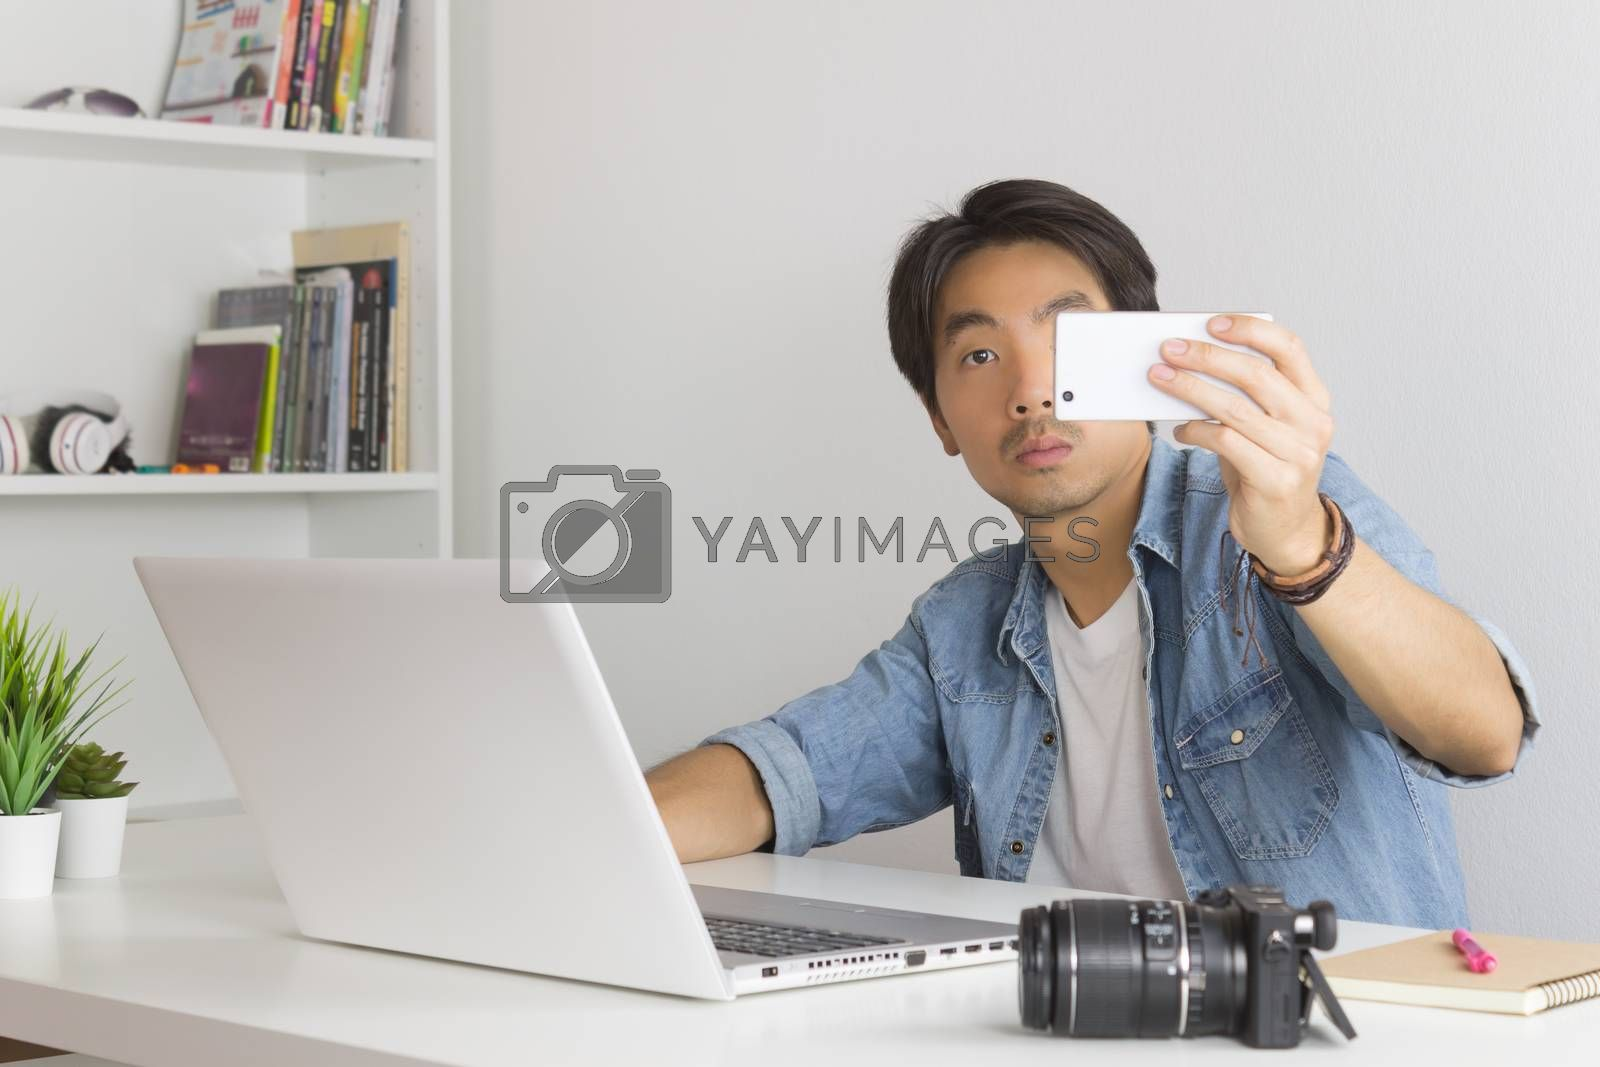 Asian Photographer or Freelancer in Denim or Jeans Shirt Selfie or Take Photo by Smartphone in Front of Laptop in Home Office. Photographer or freelancer working with technology